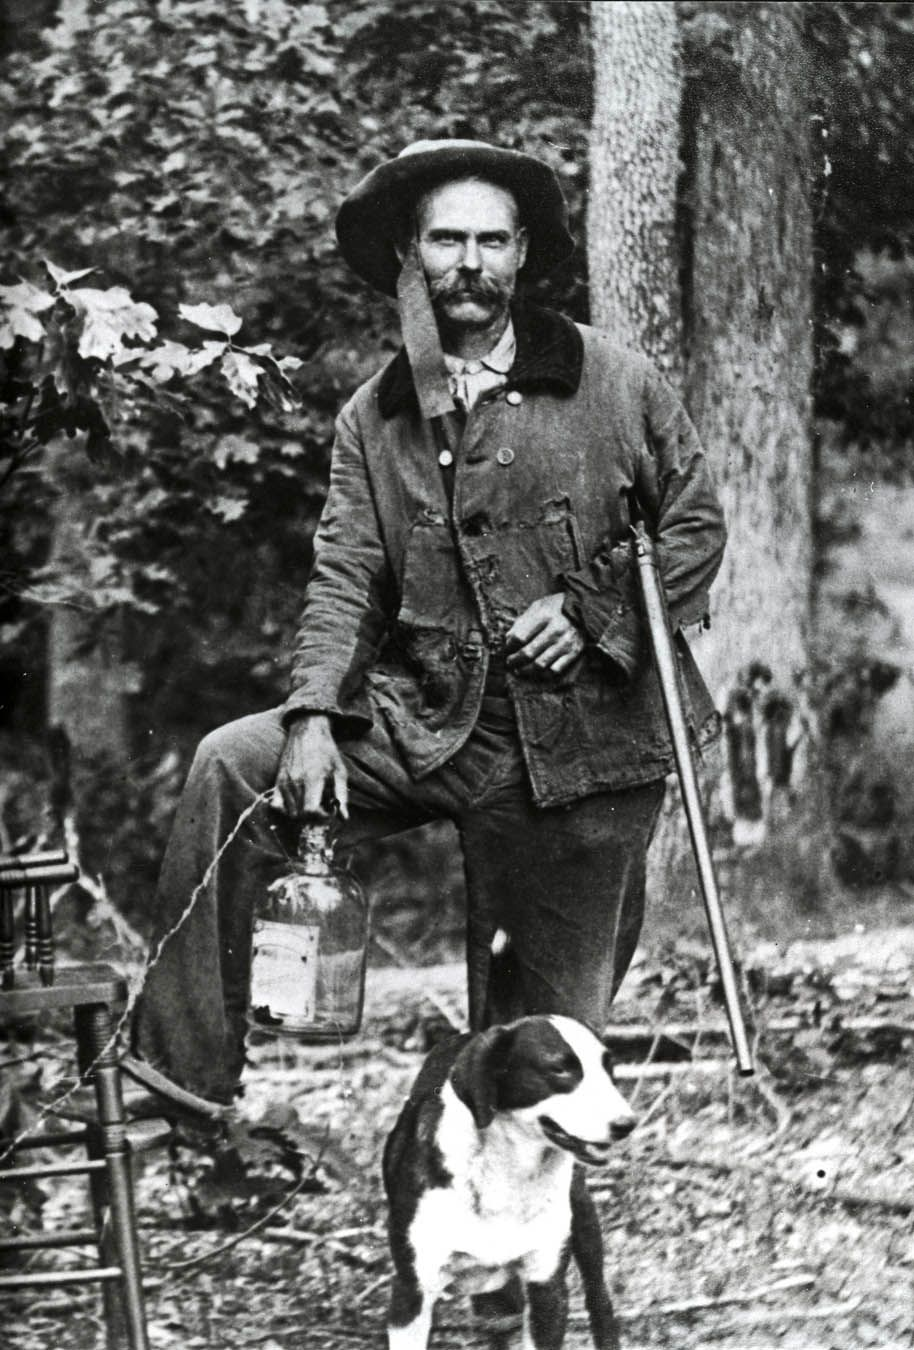 Popcorn Was An Appalachian Moonshiner Who Gained Notoriety